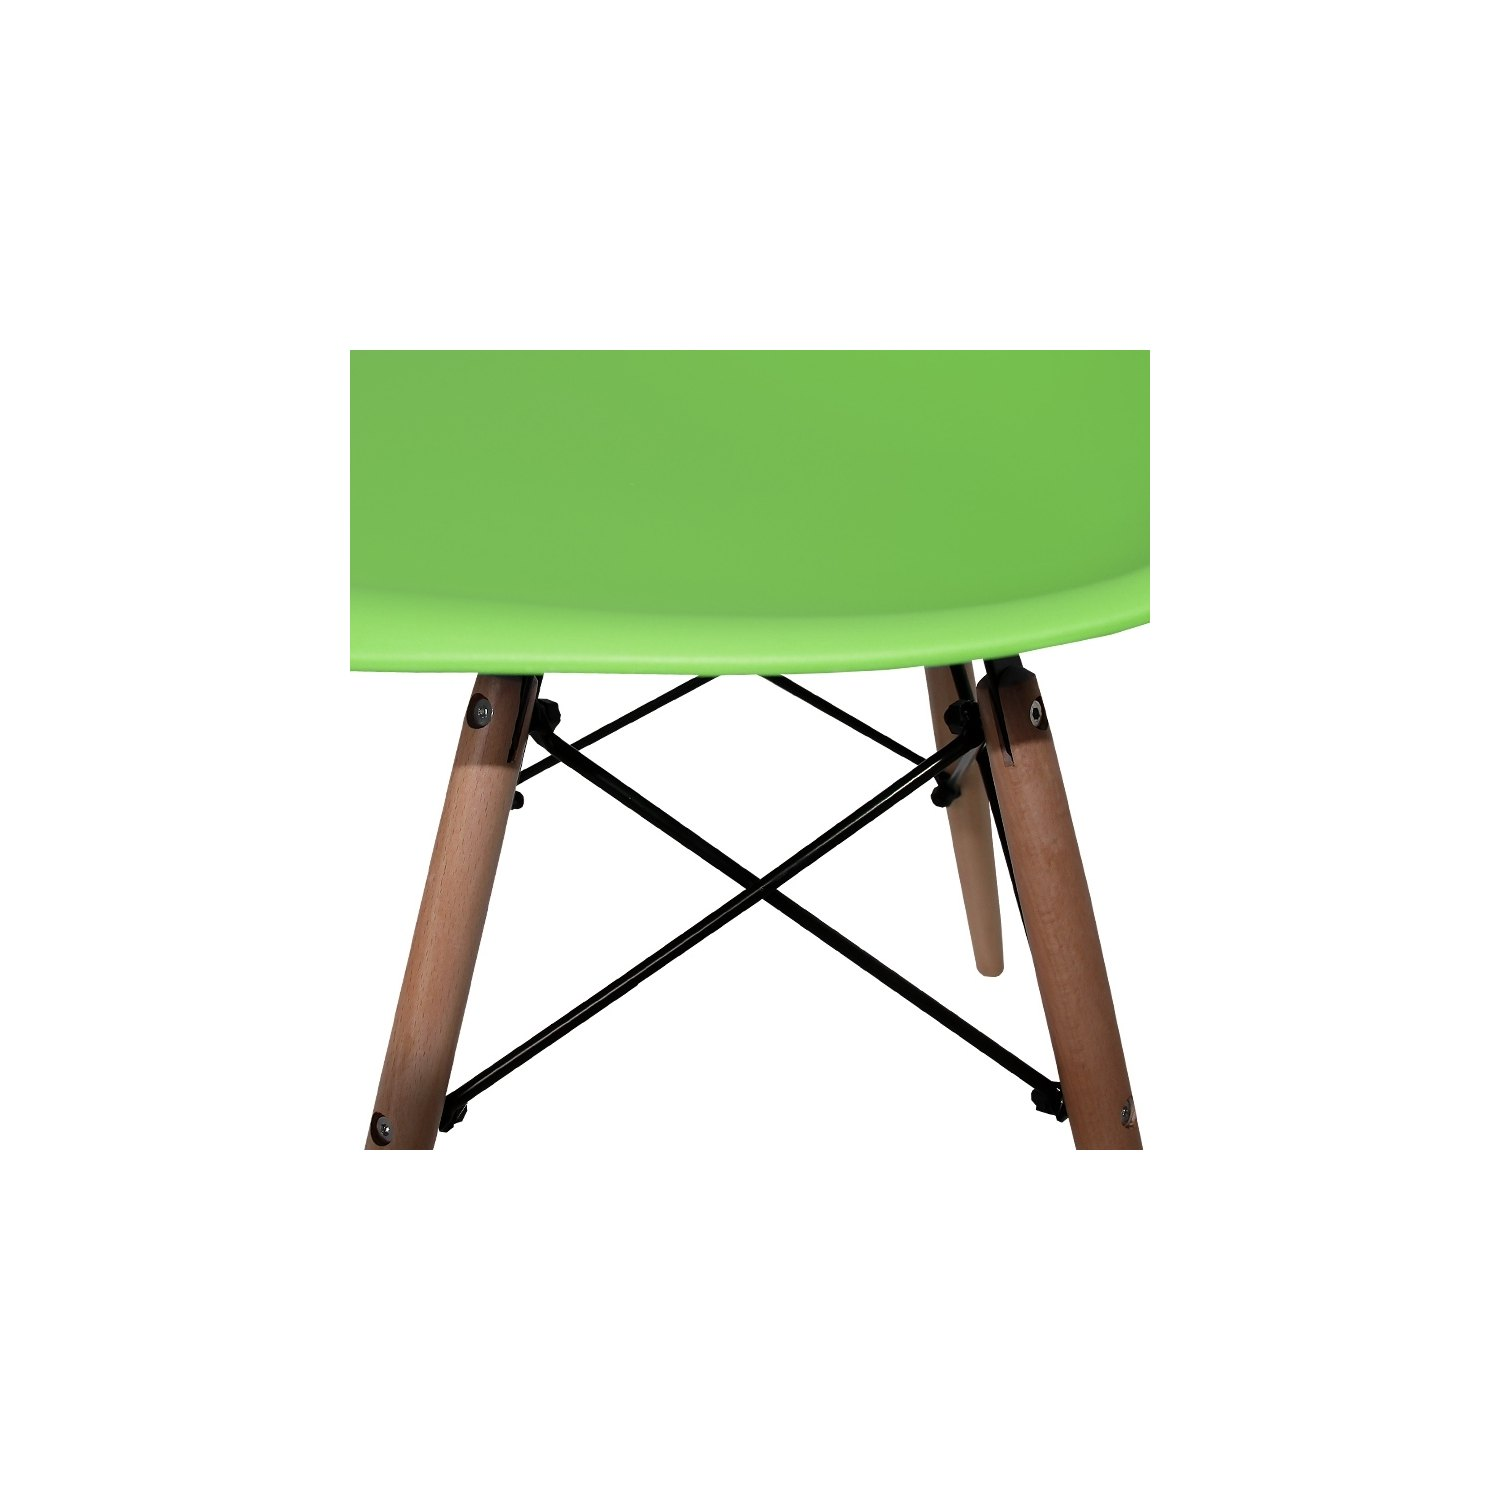 Chaises Vertes Pack 4 Chaises Tower Wood Vertes Extra Quality